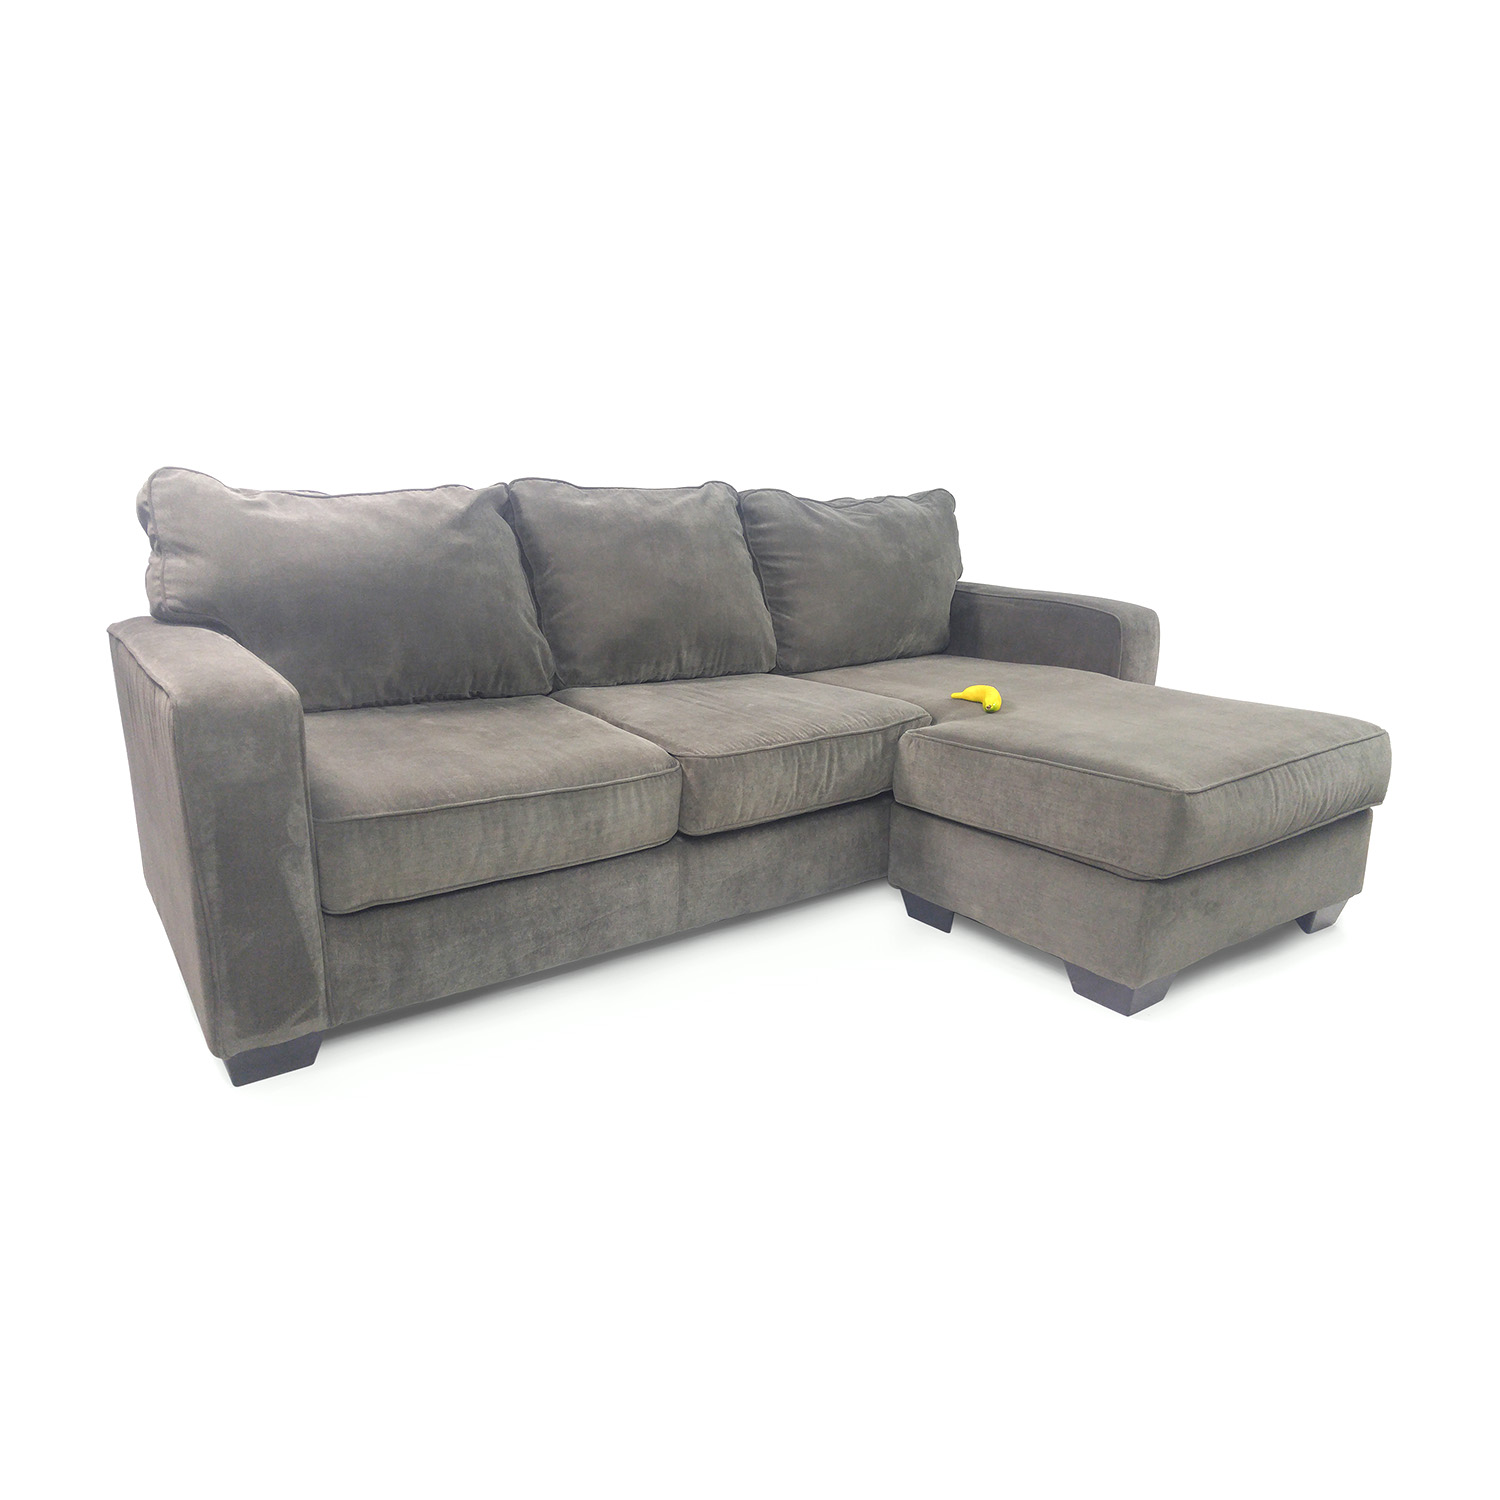 50 off ashley furniture hodan sofa chaise sofas for Ashley furniture chaise lounge couch